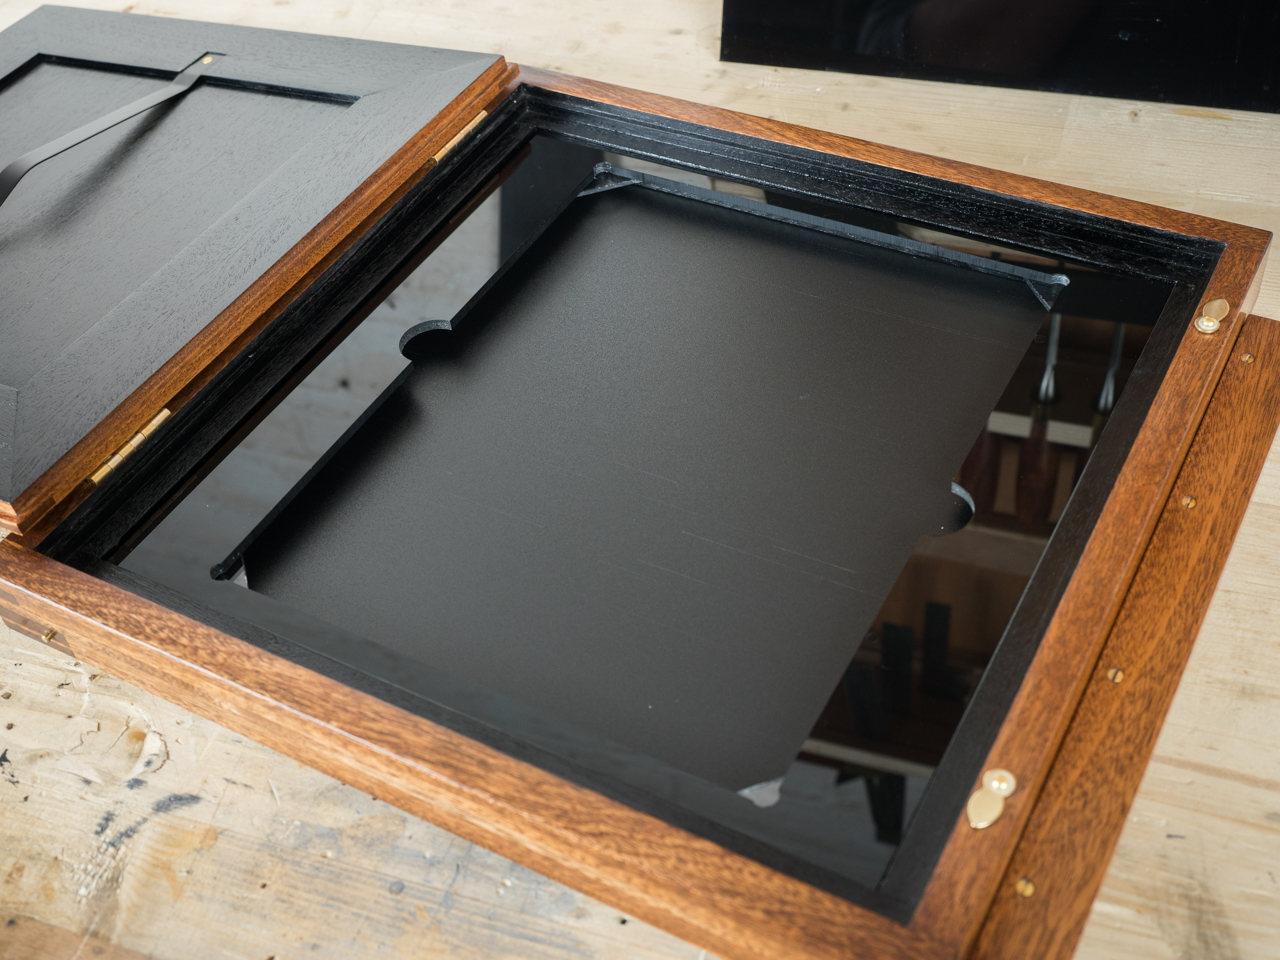 Rotatable interchangeable inserts allow multiple plate sizes in one holder. & Voce Cameras | Wet Plate Cameras